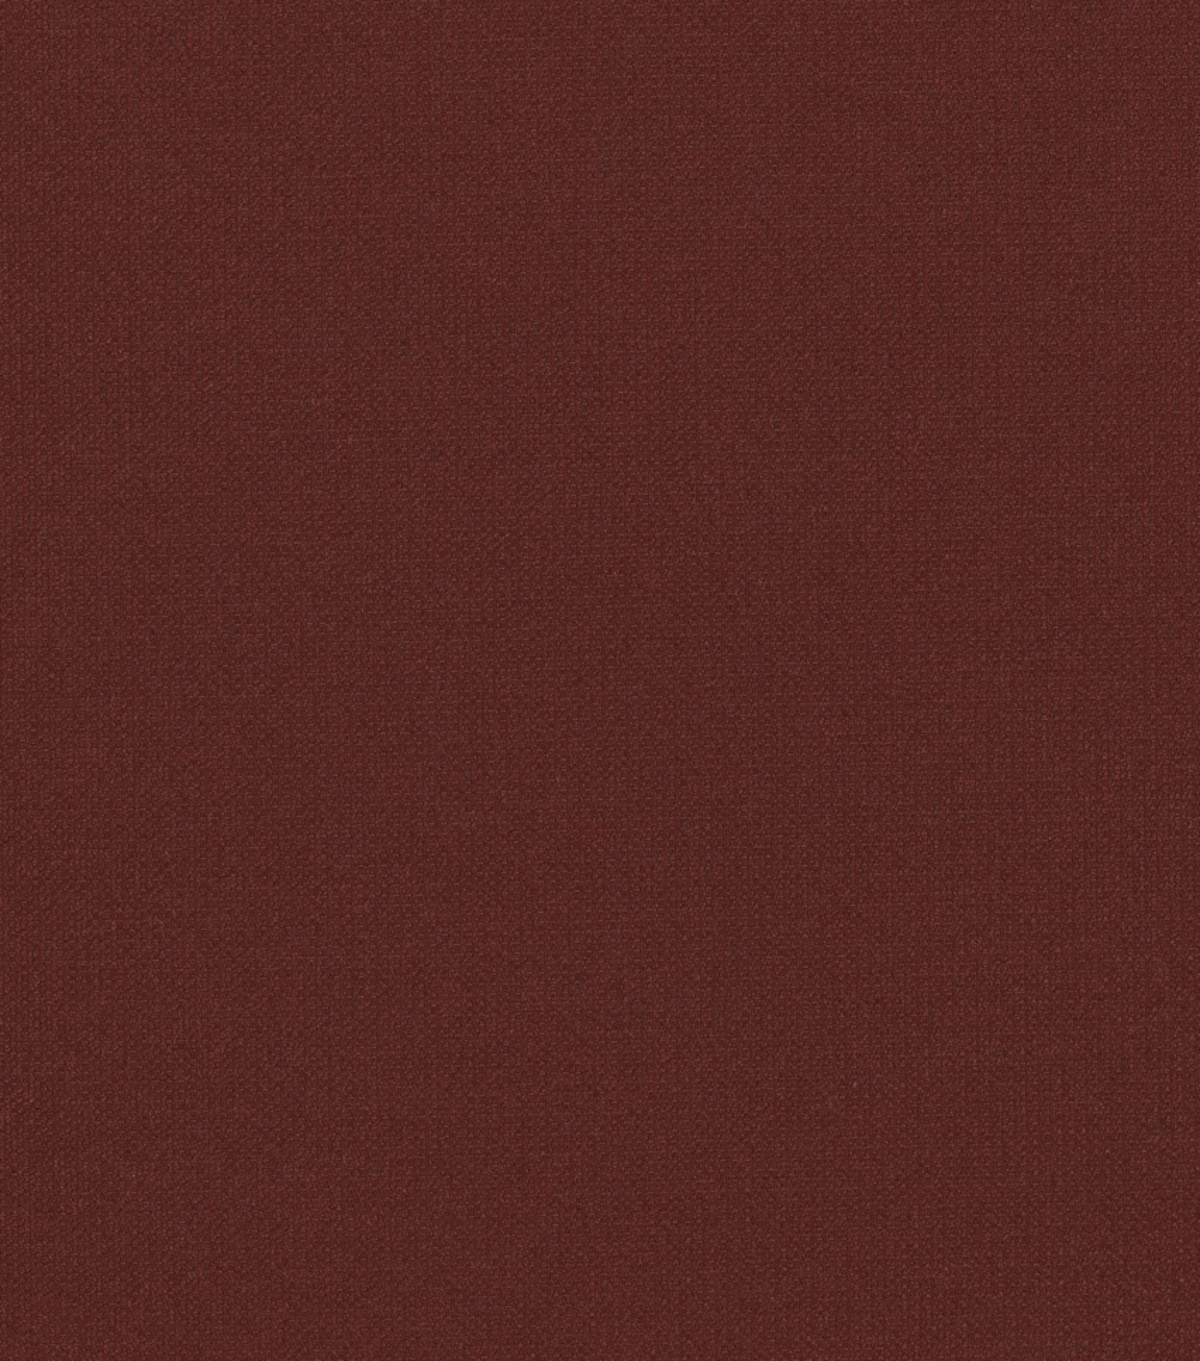 Home Decor 8\u0022x8\u0022 Fabric Swatch-Motown Merlot